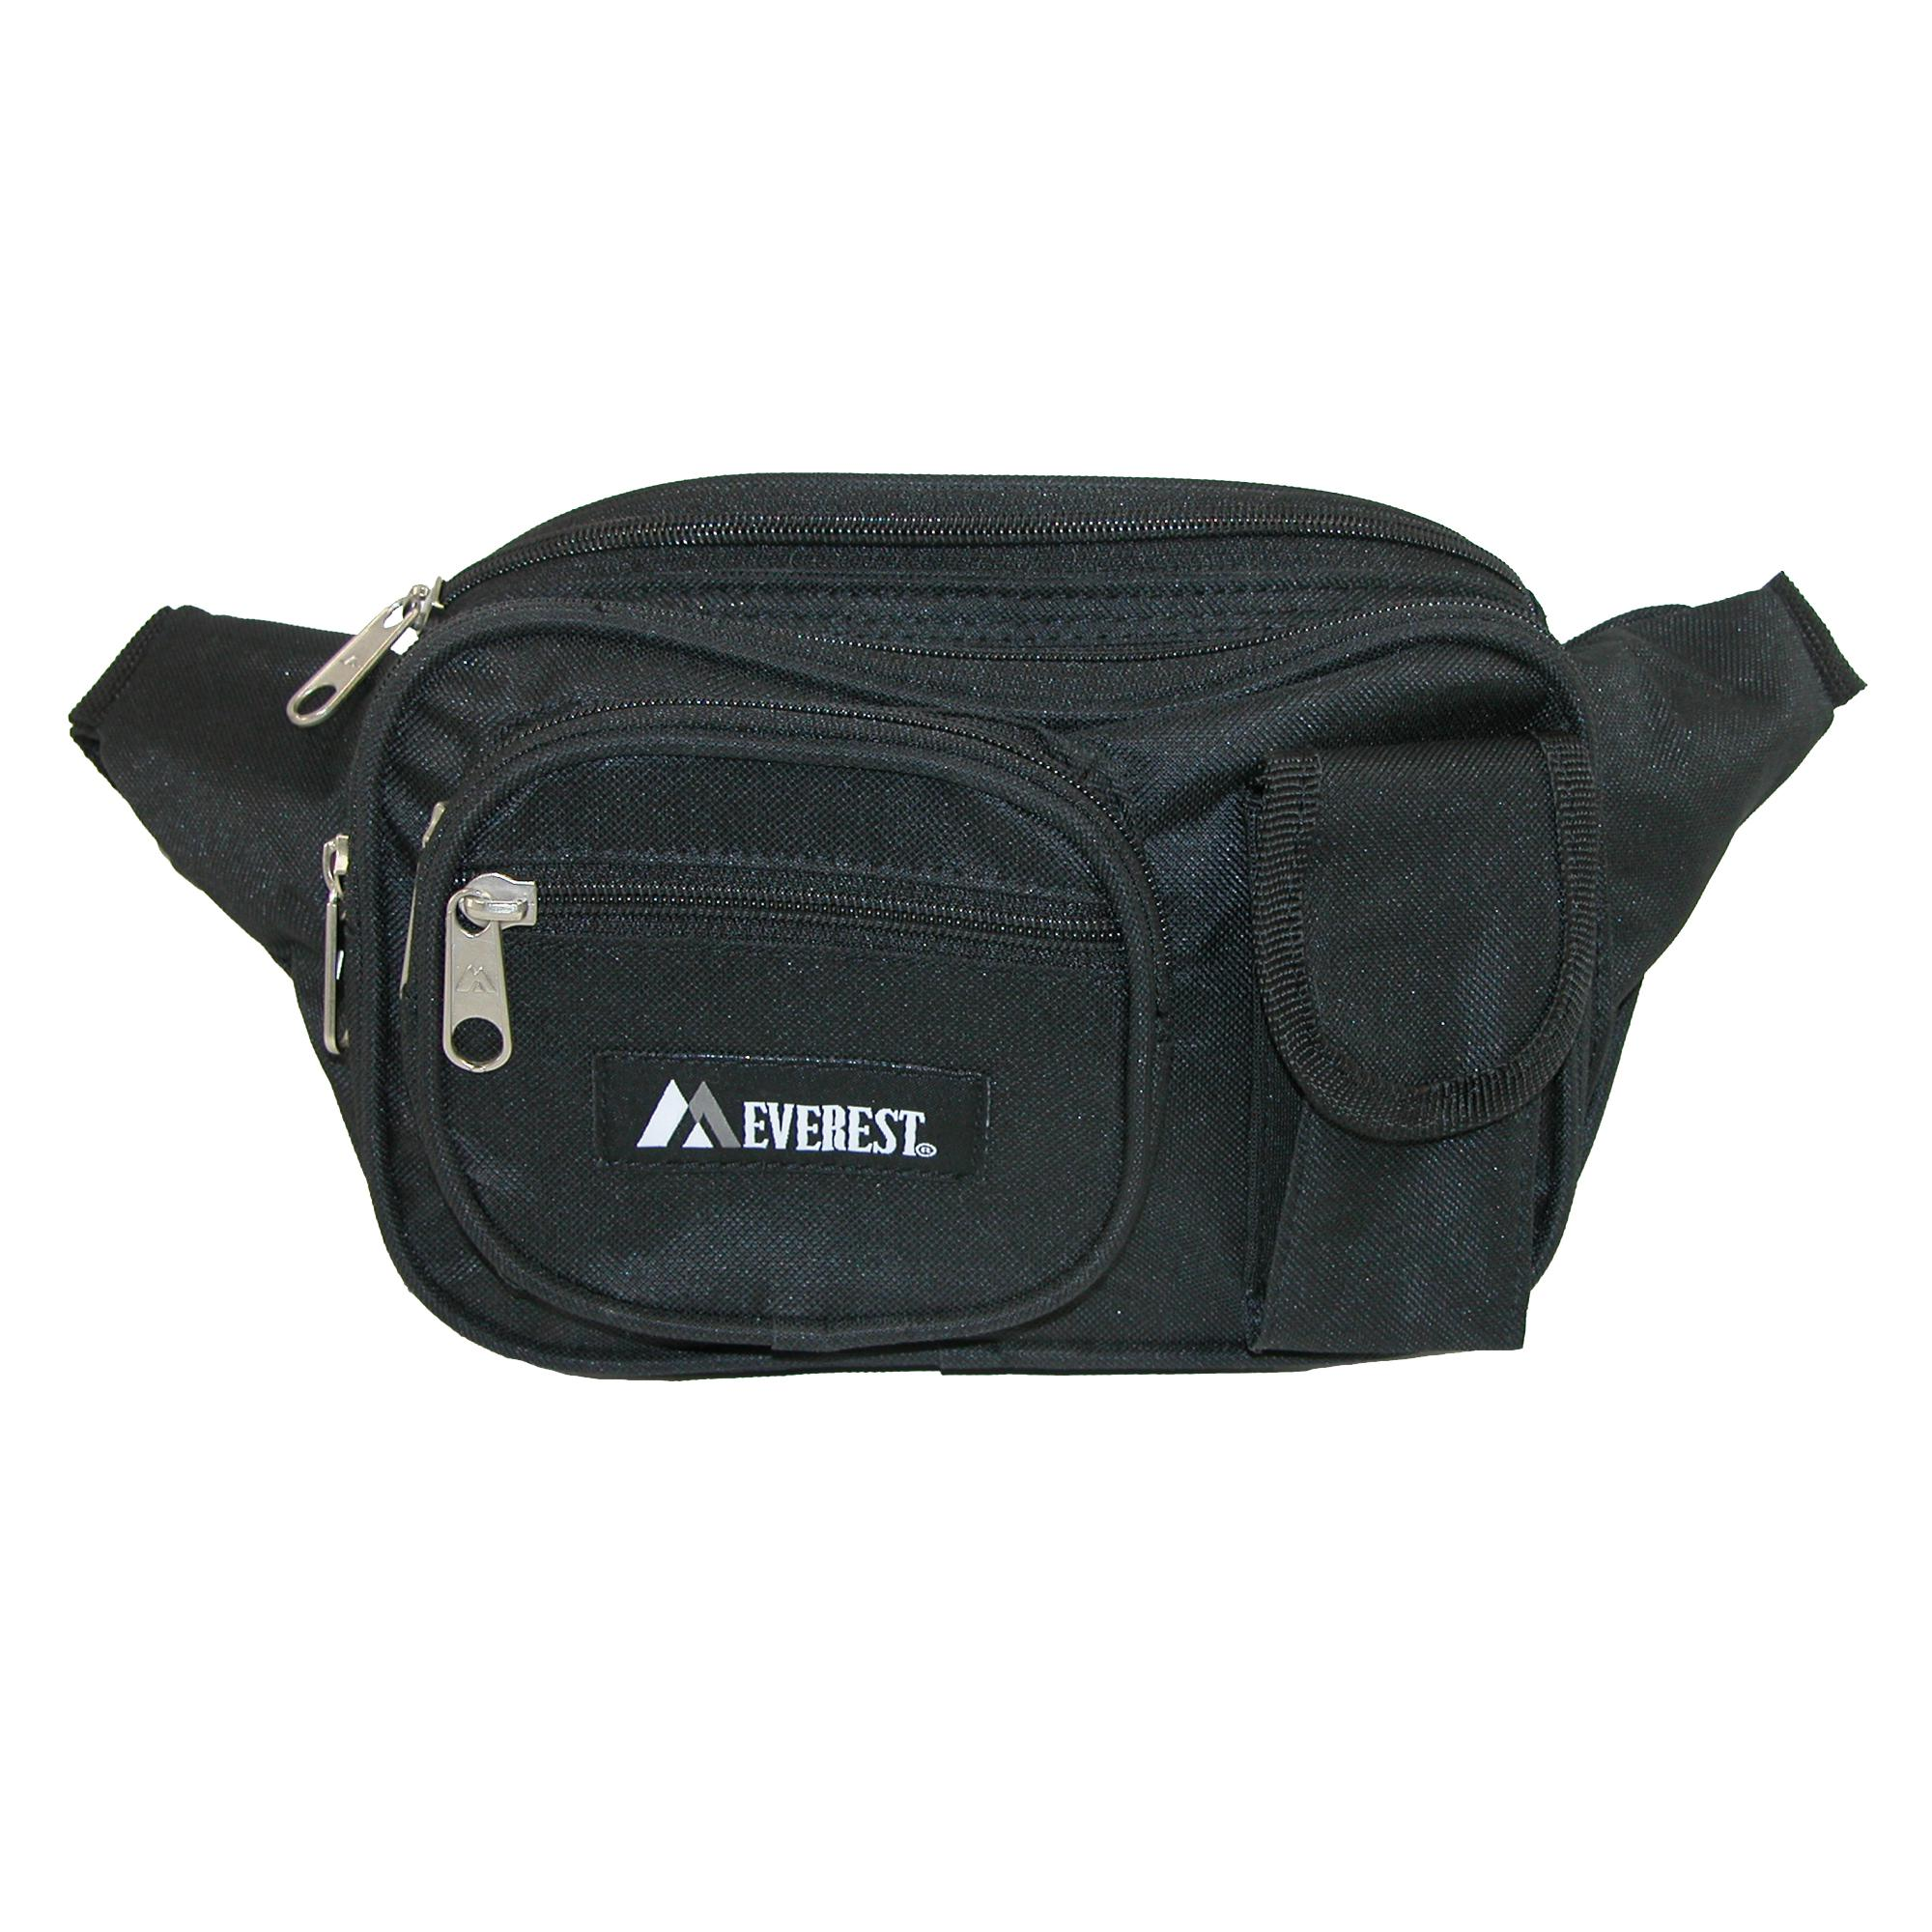 Everest_Fabric_Multiple_Pockets_Waist_Pack_